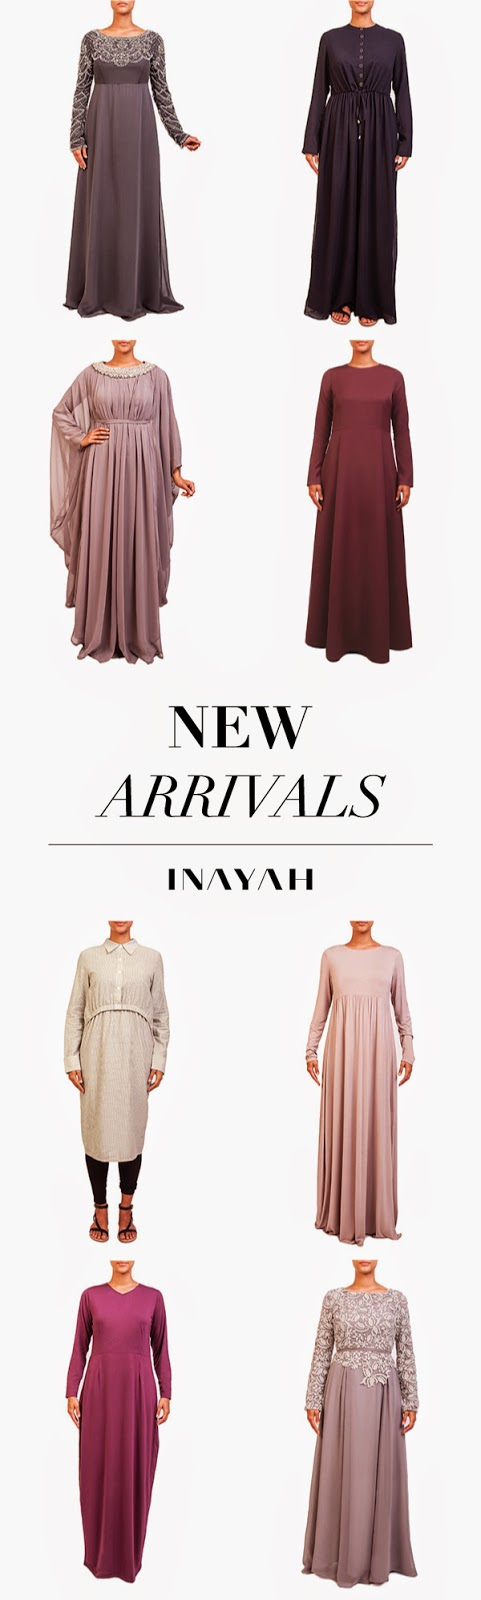 "<a href='http://www.inayahcollection.com/?referrer=CNWR_20038701372942330'><img src=""http://www.inayahcollection.com/includes/templates/inayah/images/referrers/INAYAH_COMBO2_WIDE_SKYSCRAPER.png"" alt=""SHOP NOW AT INAYAH"" title=""SHOP NOW AT INAYAH"" height=""600"" width=""160"" /></a>"